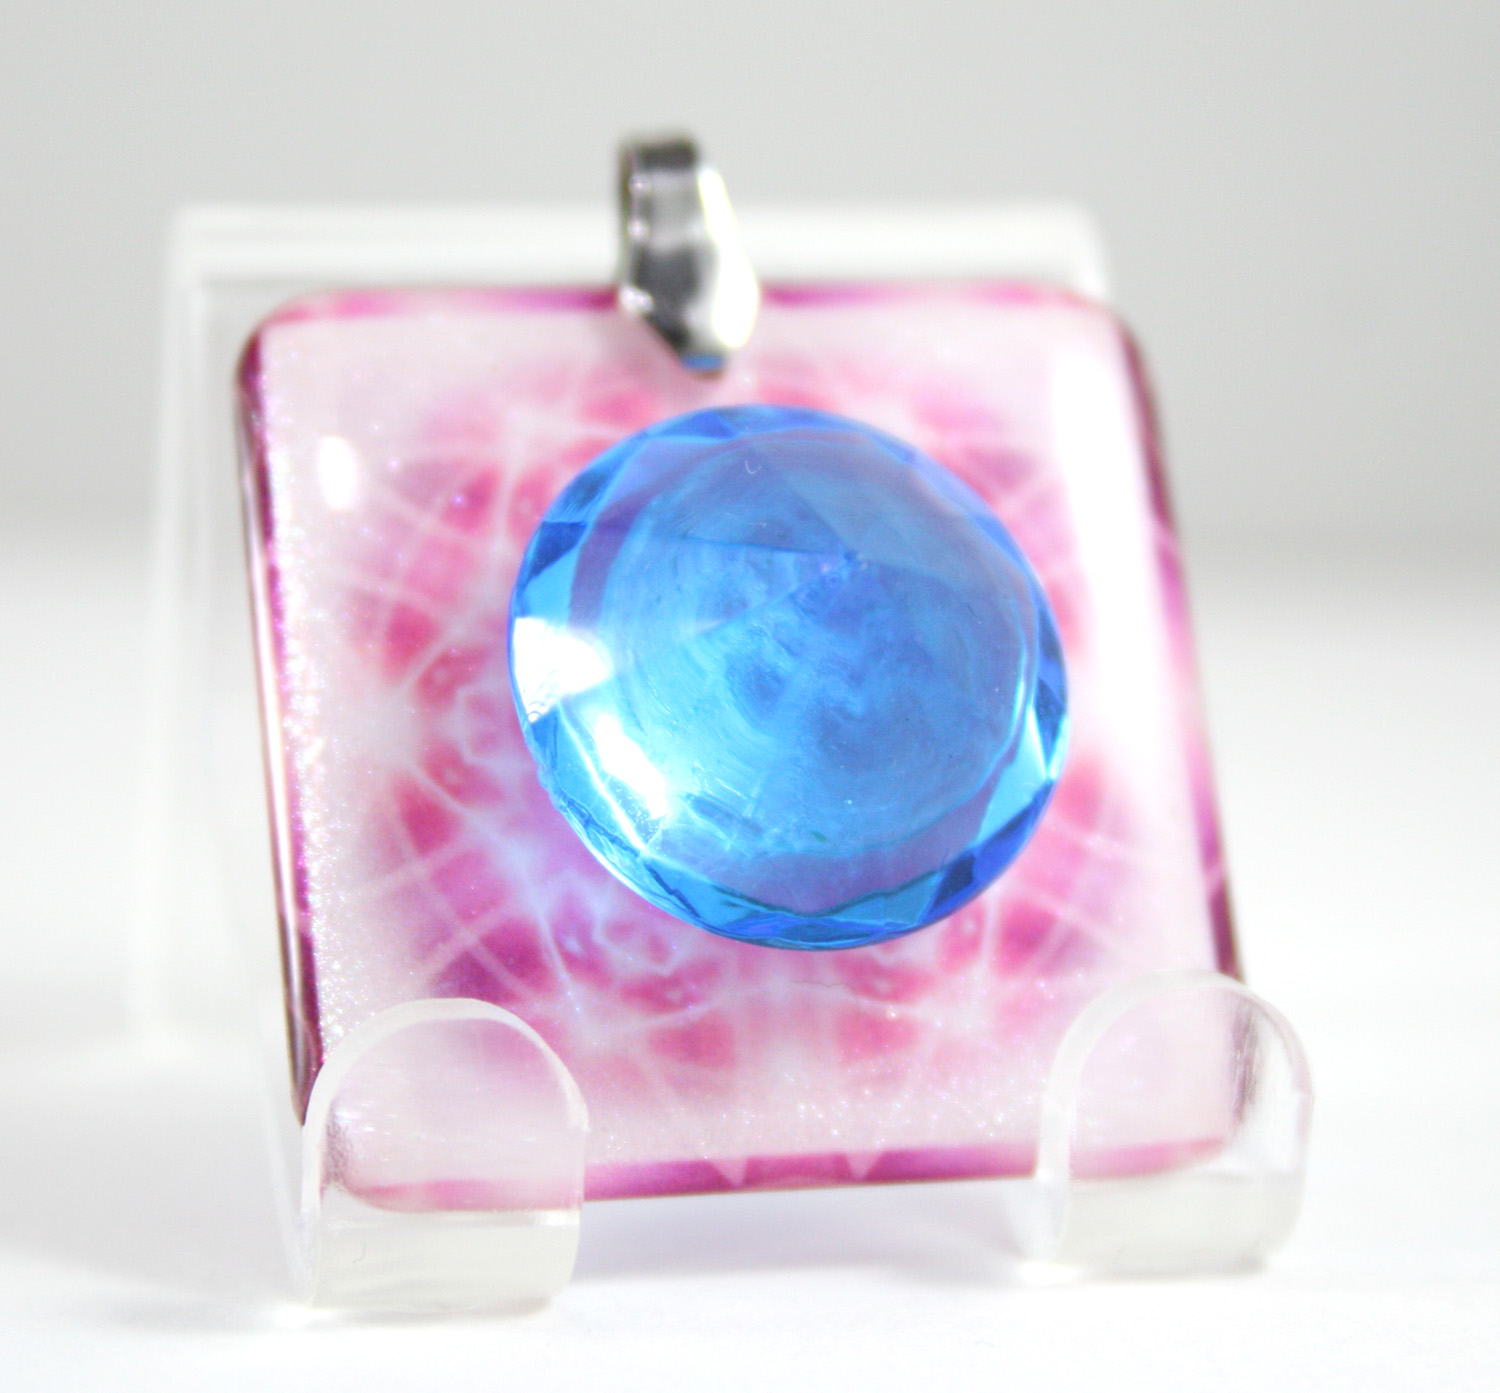 pink-pure-infinity2-double-blue-022